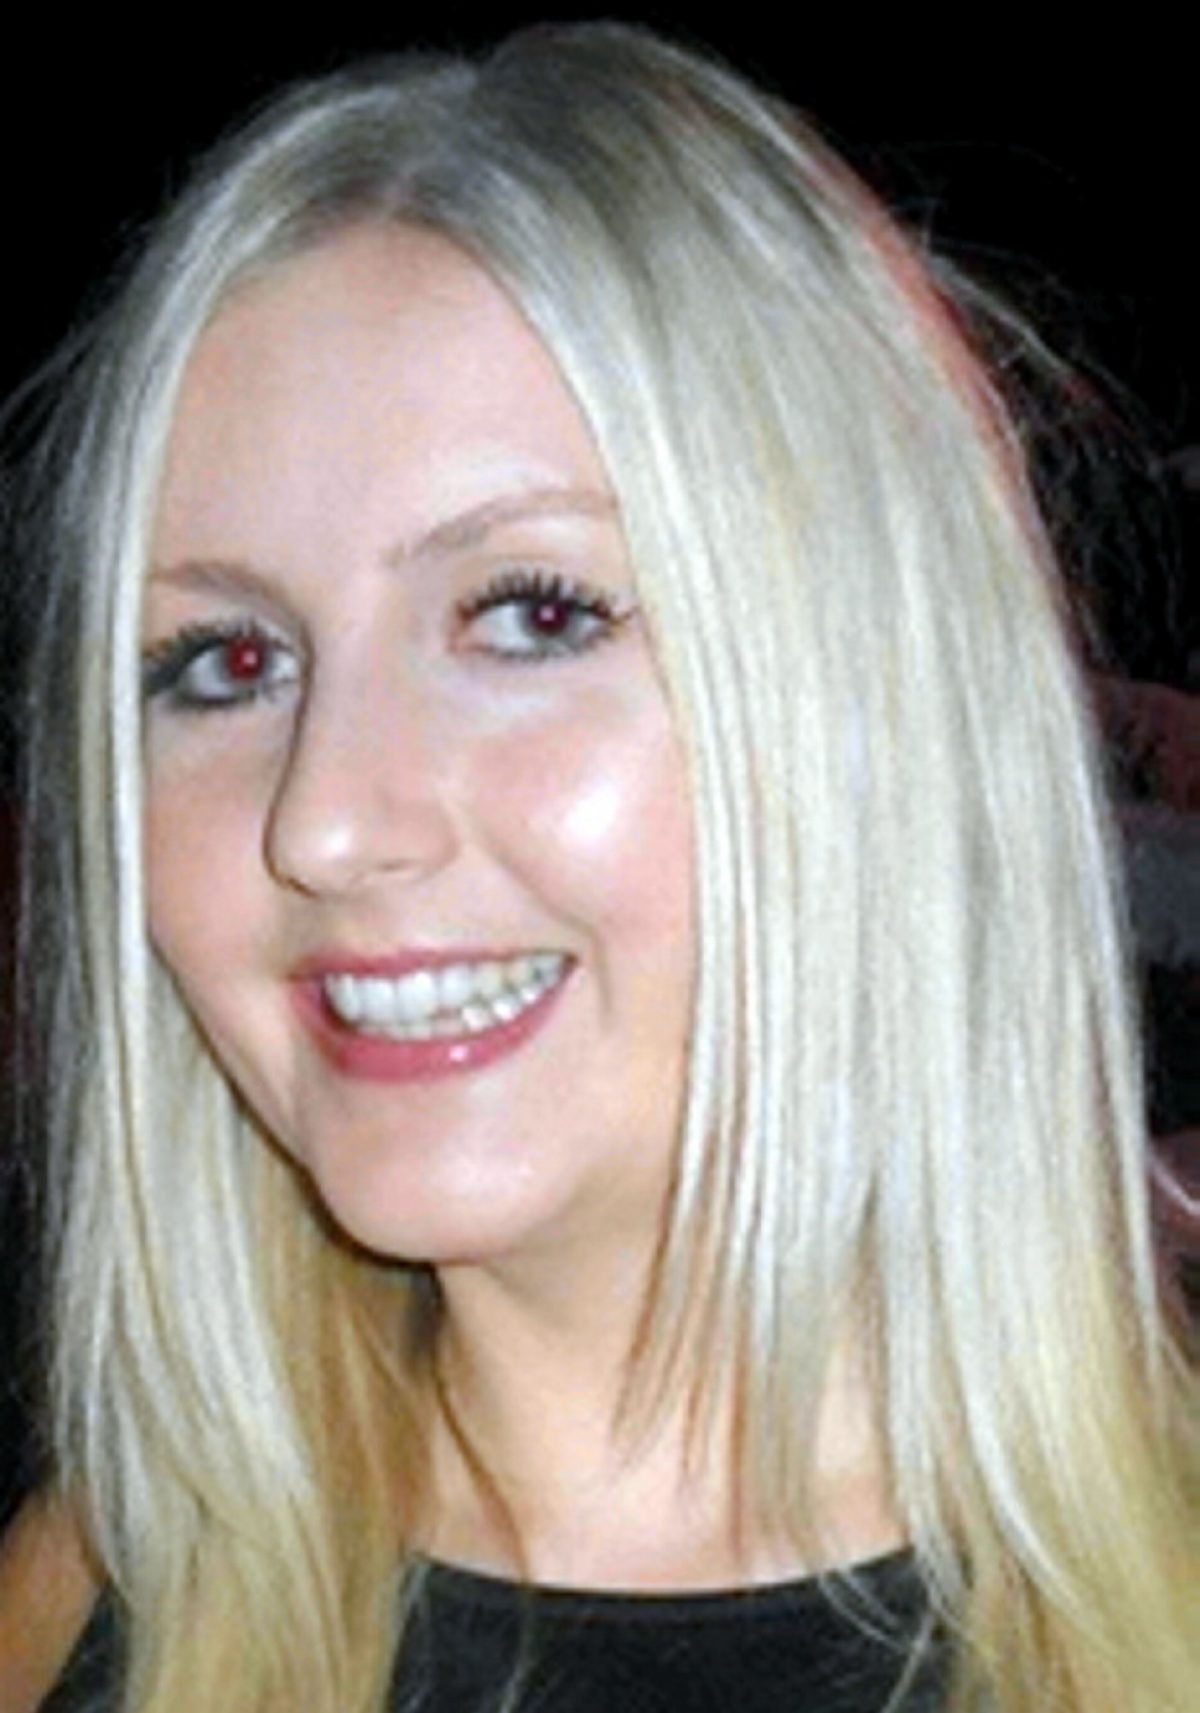 Woman found hanged in Sedgley was obsessed with her blonde hair